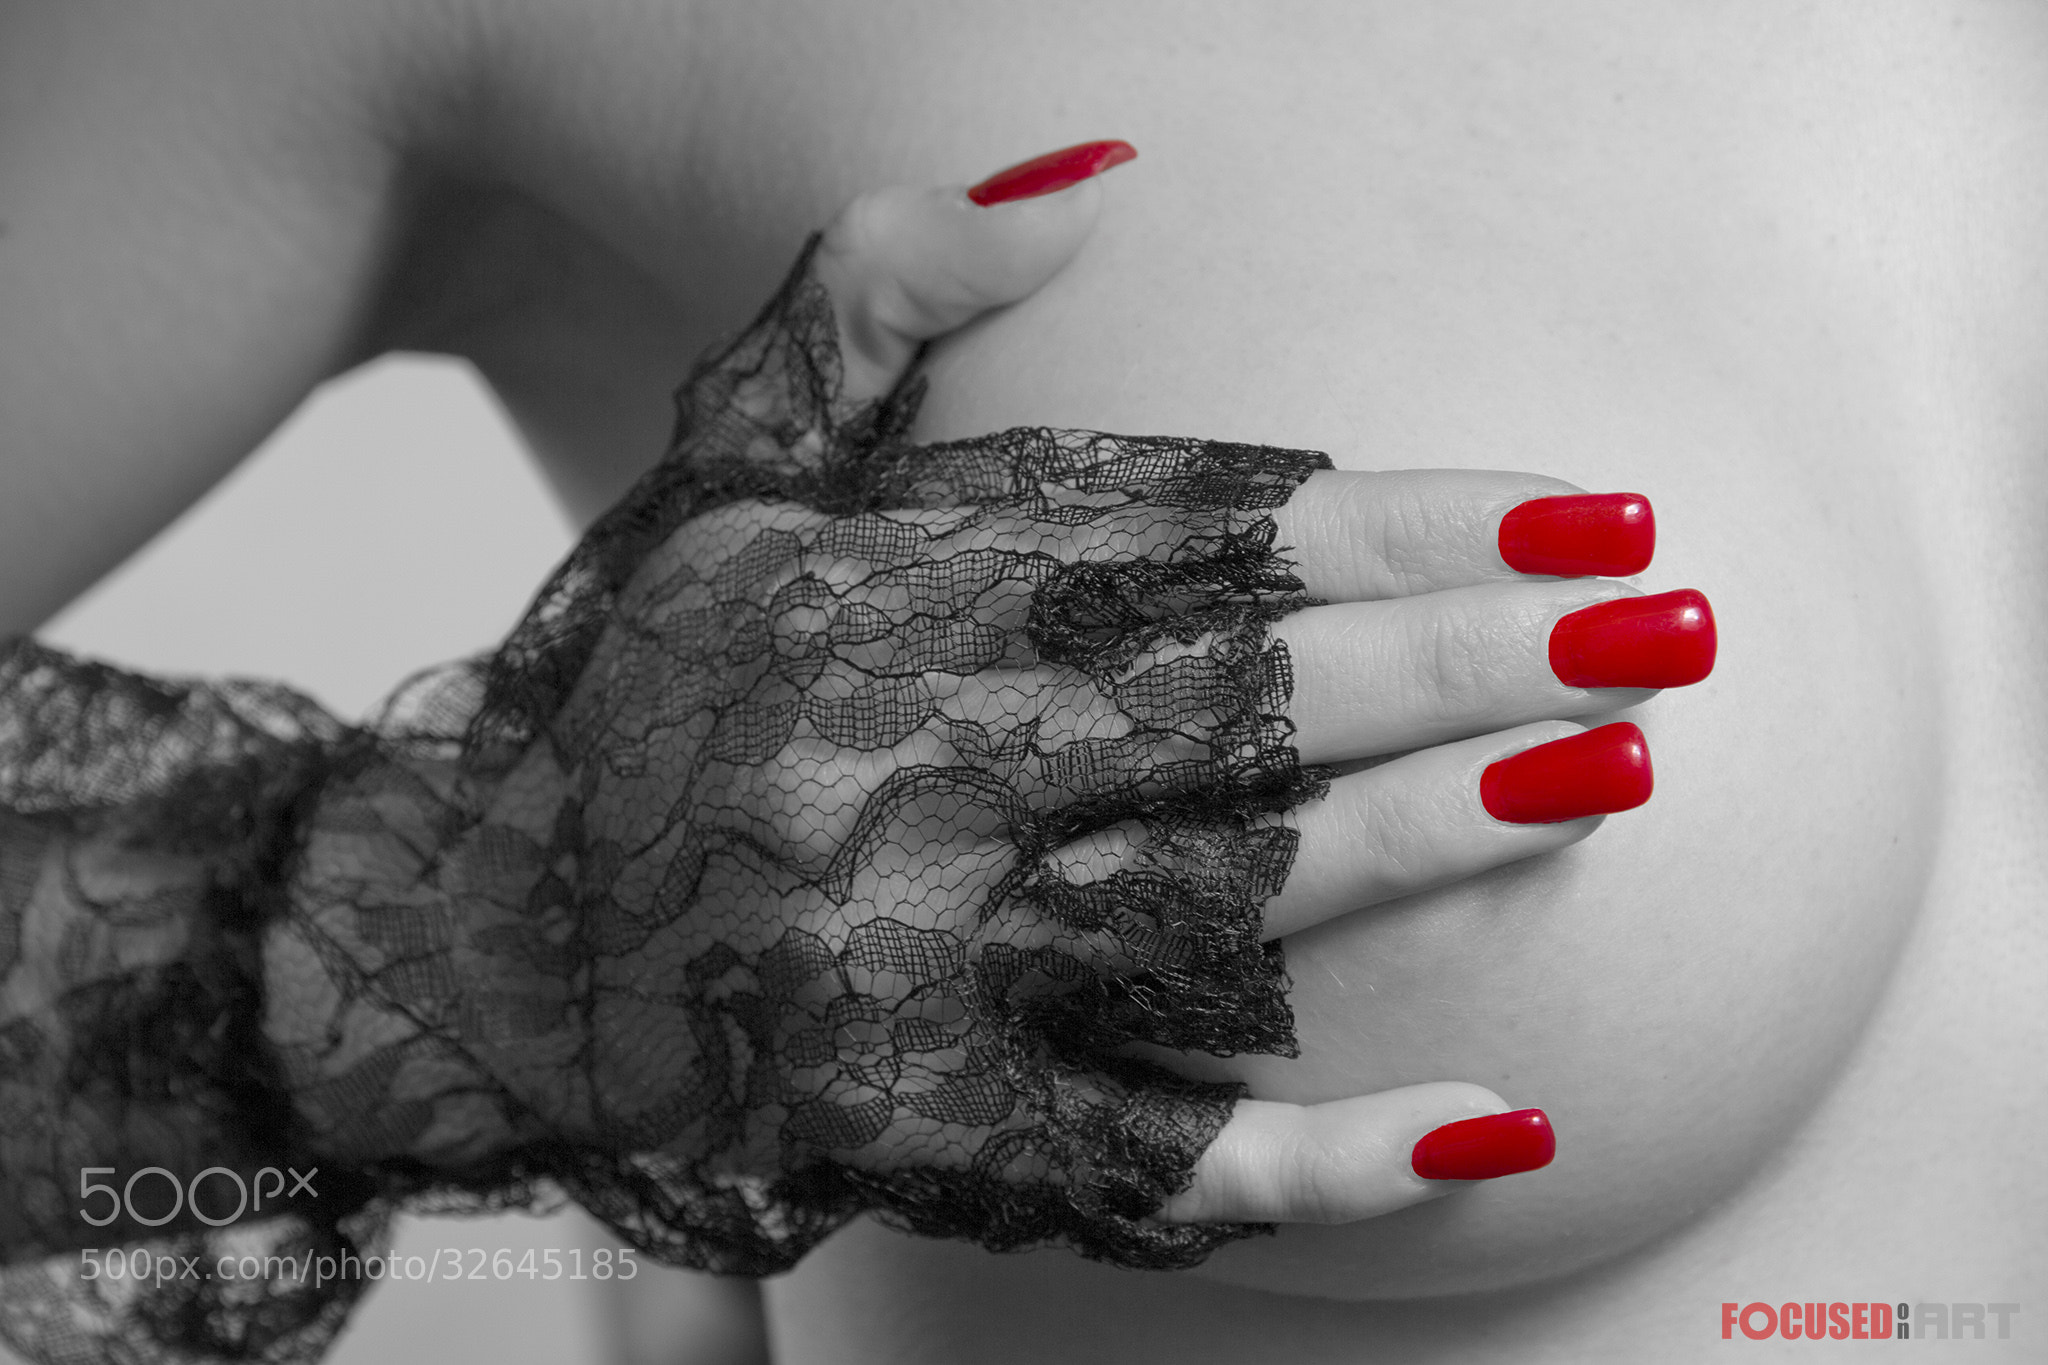 Photograph RedNails by Guenter Stoehr on 500px